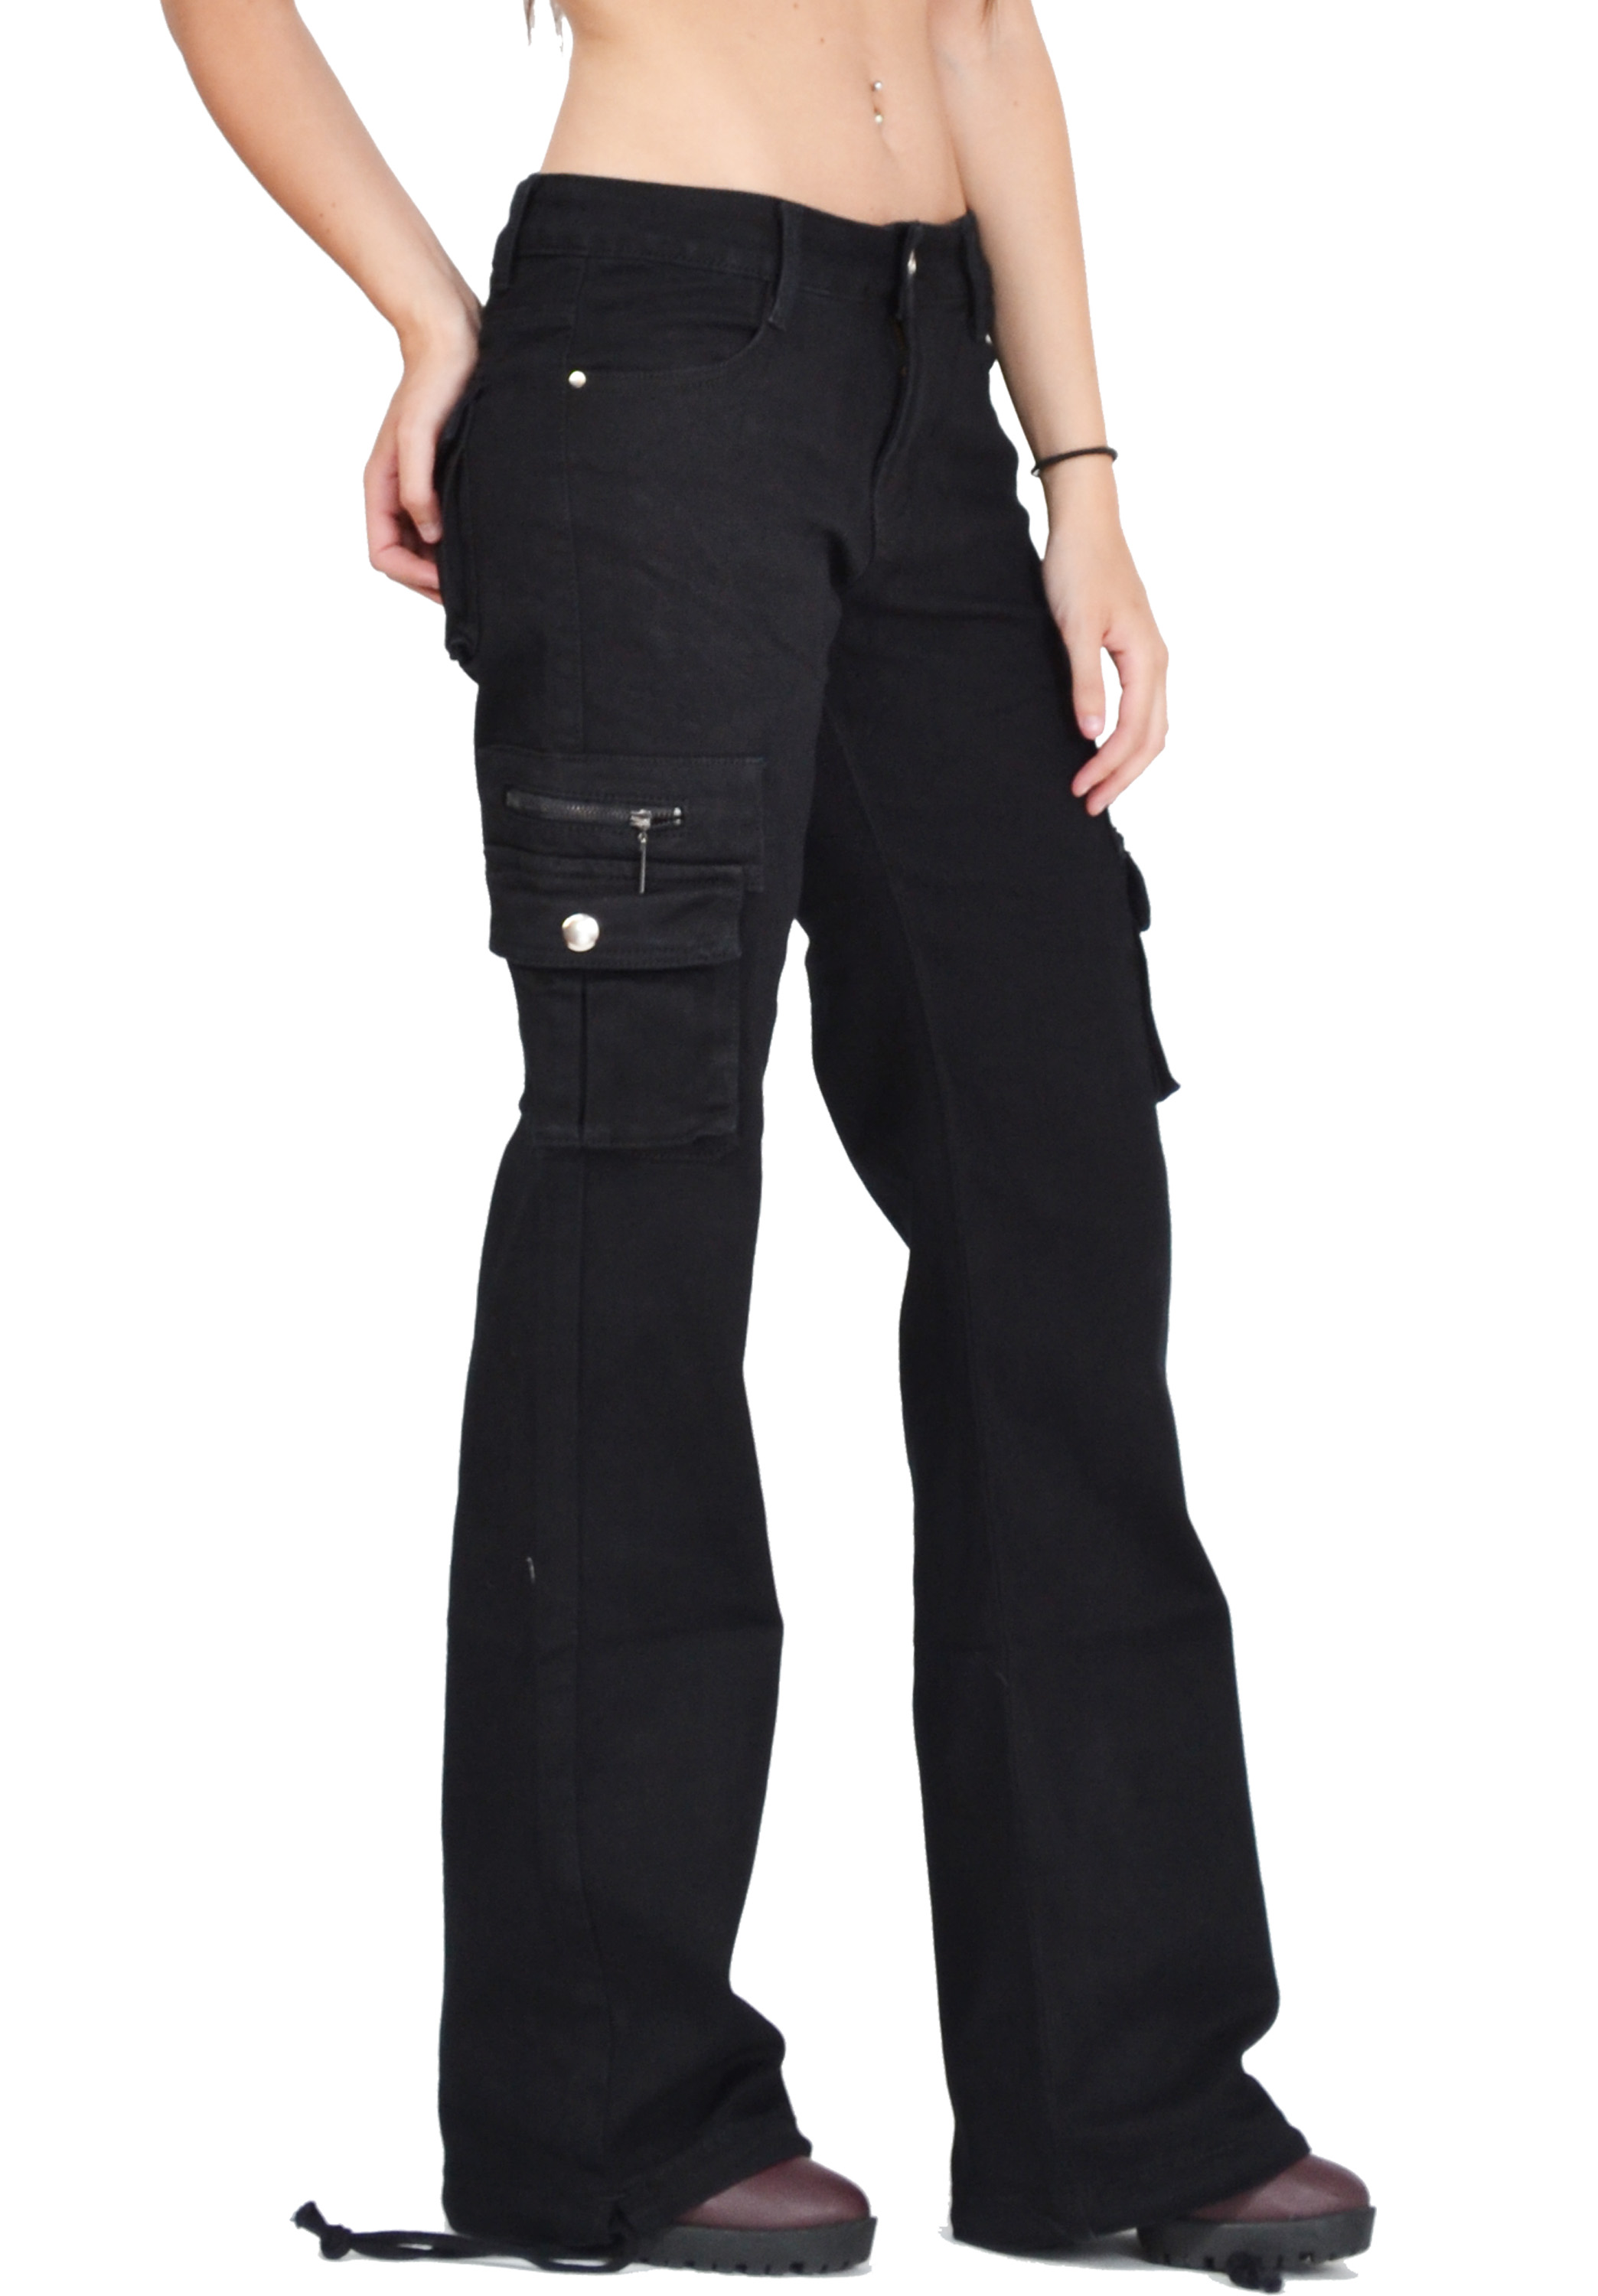 womens cargo pants ebay photo - 2